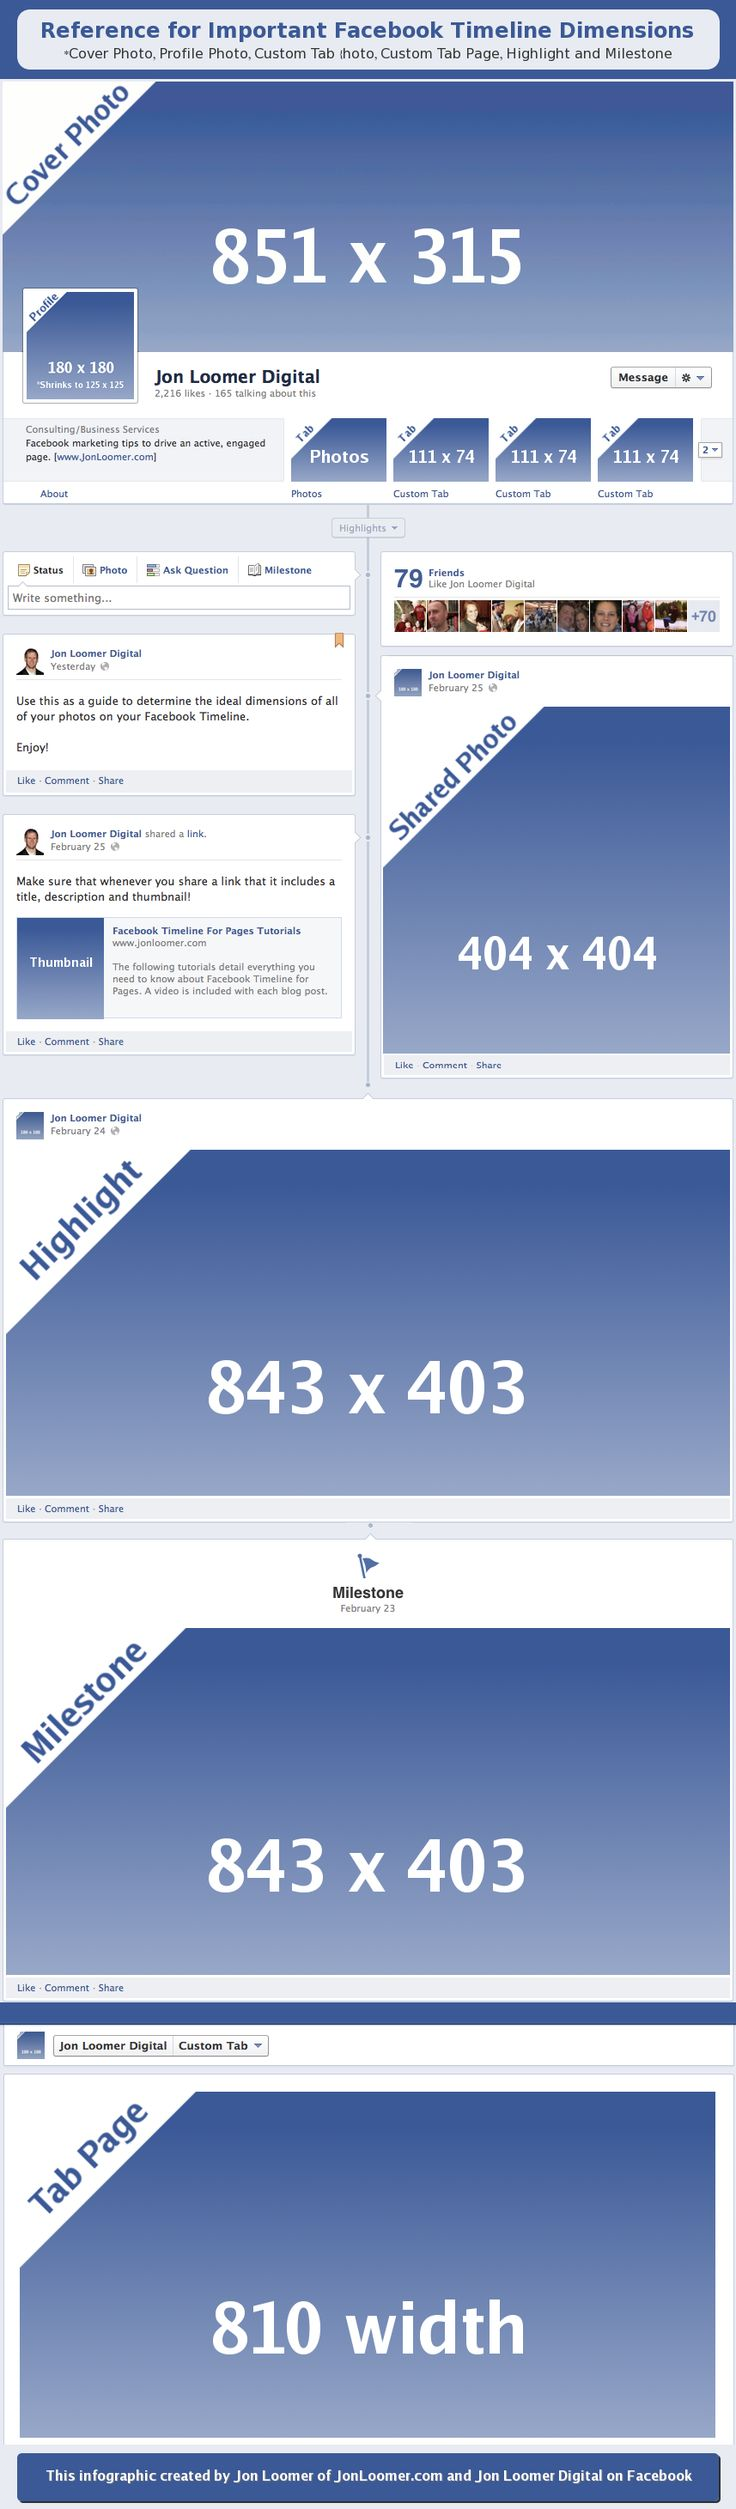 Reference of Dimensions for Facebook Timeline For Pages [Infographic]